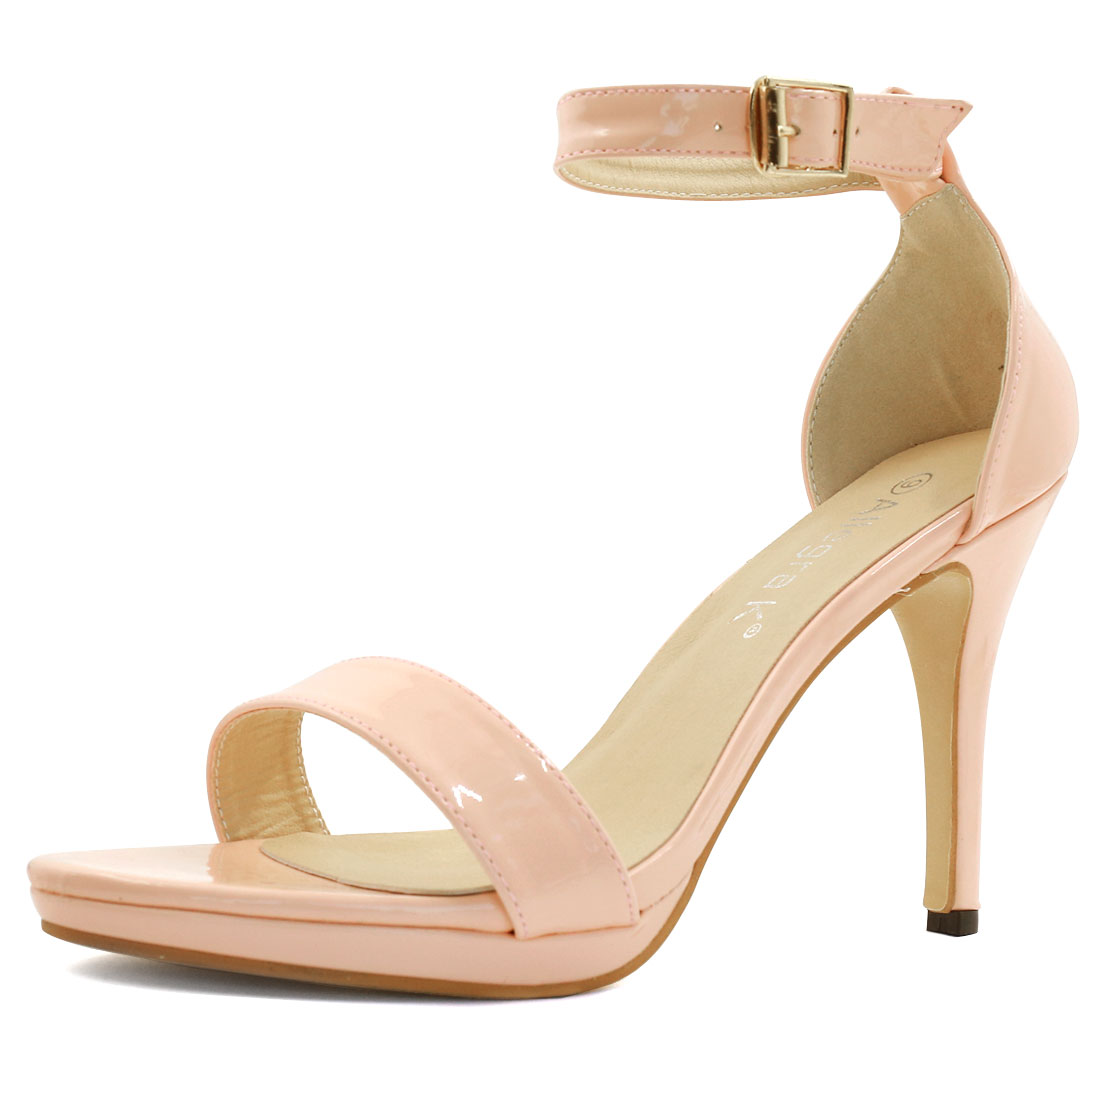 Woman Open Toe High Heel Metallic Ankle Strap Sandals Pink US 8.5